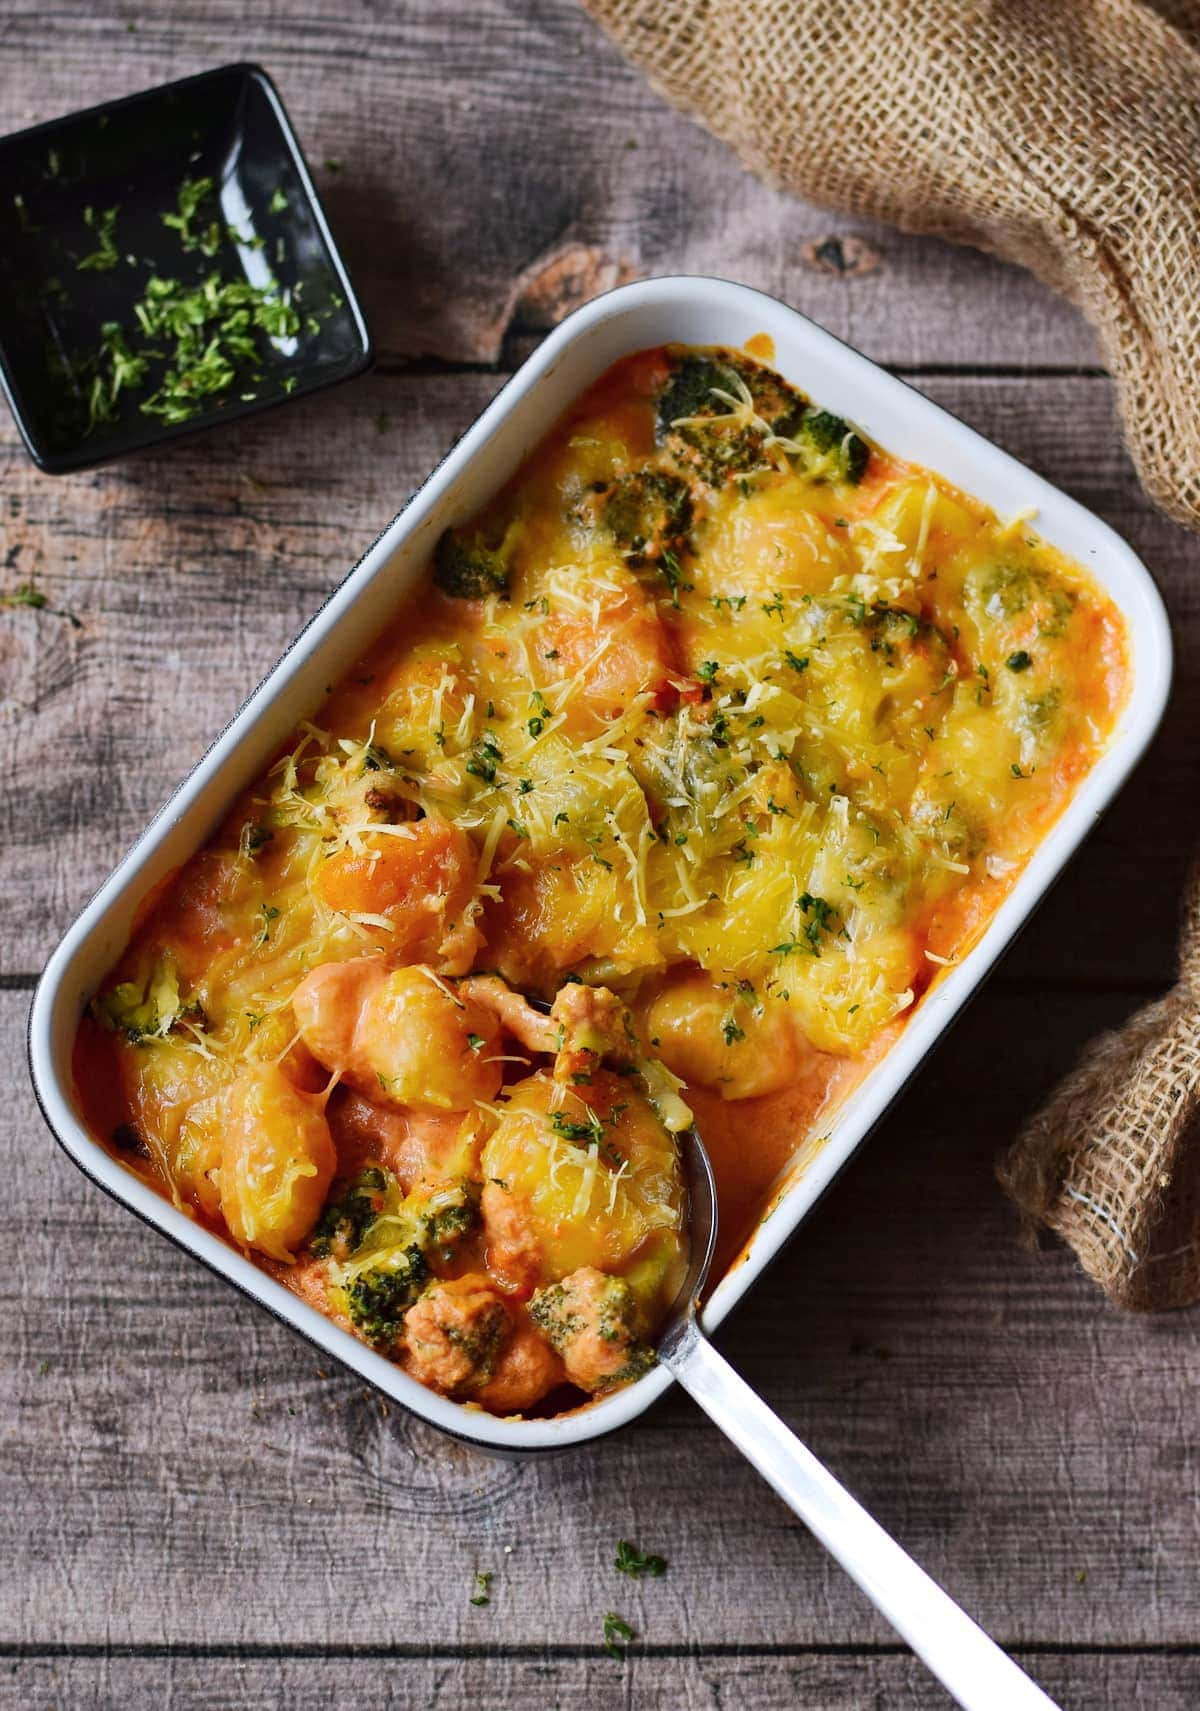 baked gnocchi with broccoli and vegan cheese from above with ladle